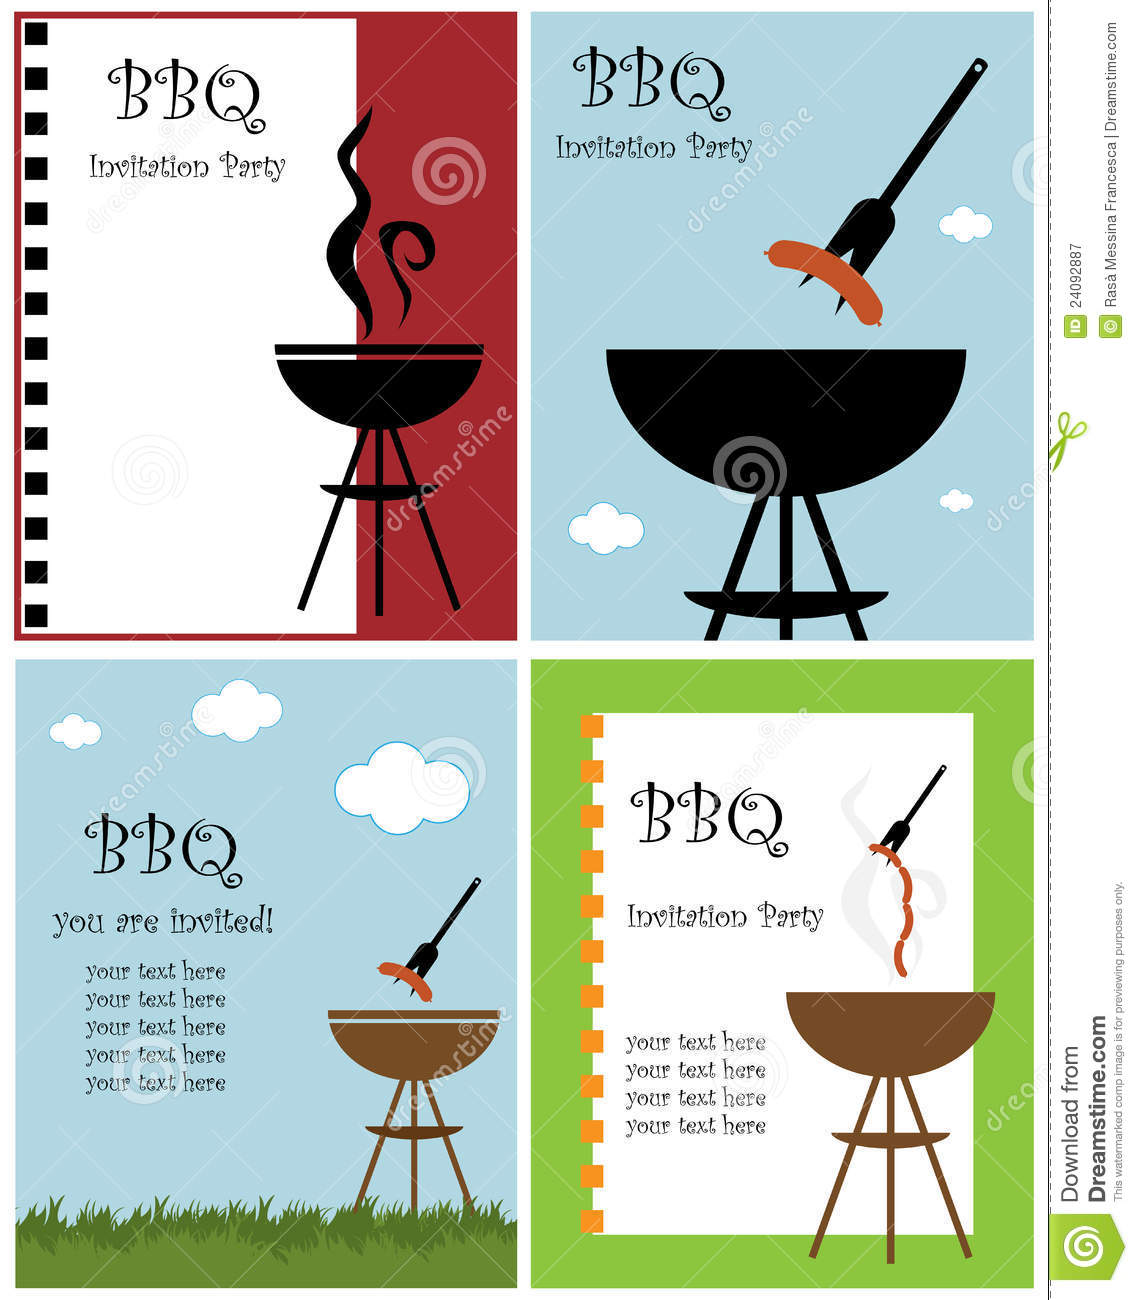 bbq party invitation royalty free stock photography  image, party invitations